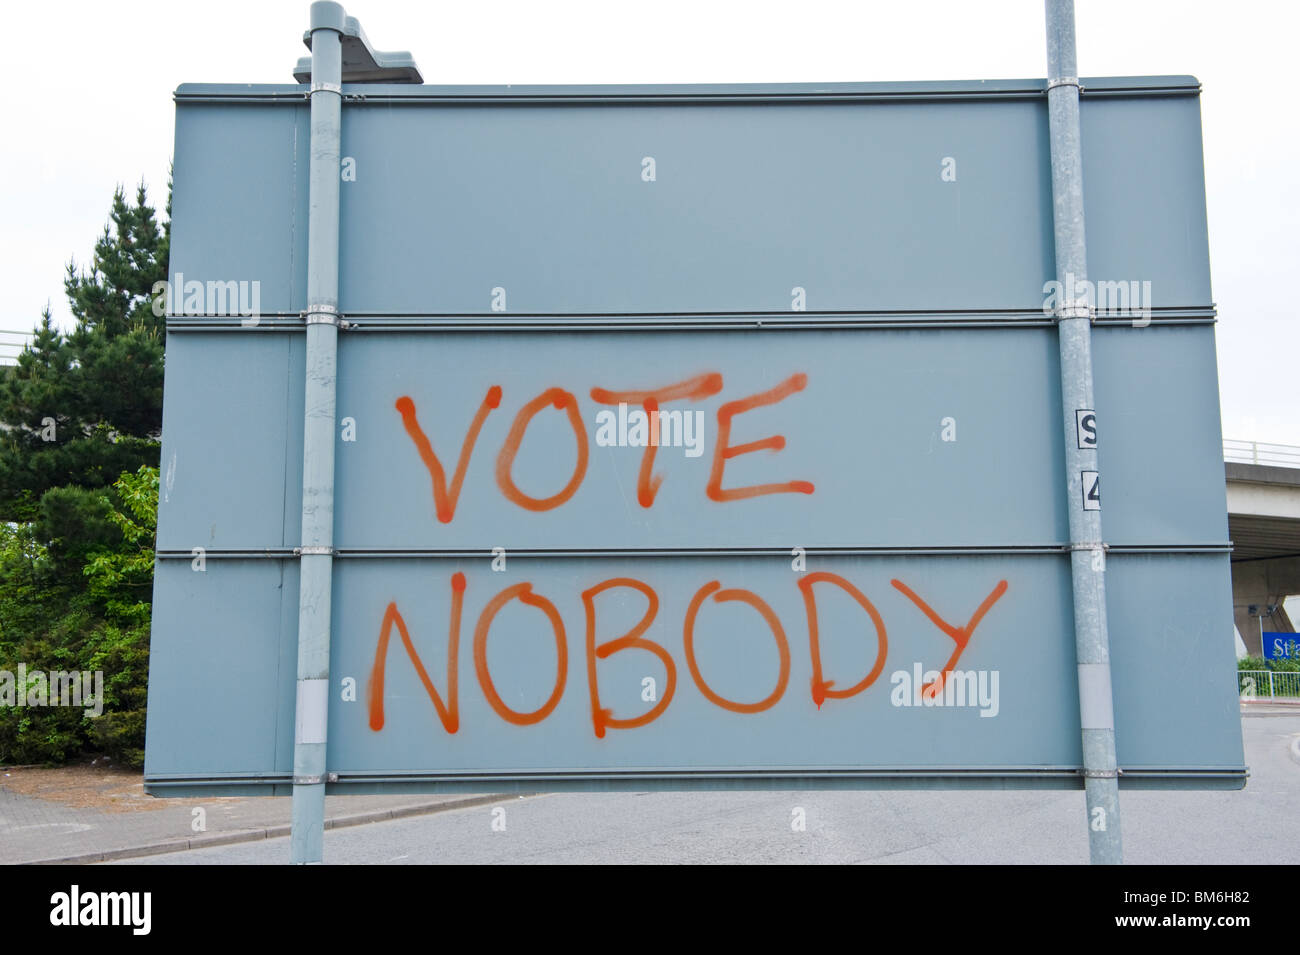 VOTE NOBODY graffiti on rear of roadsign in Cardiff South Wales UK - Stock Image